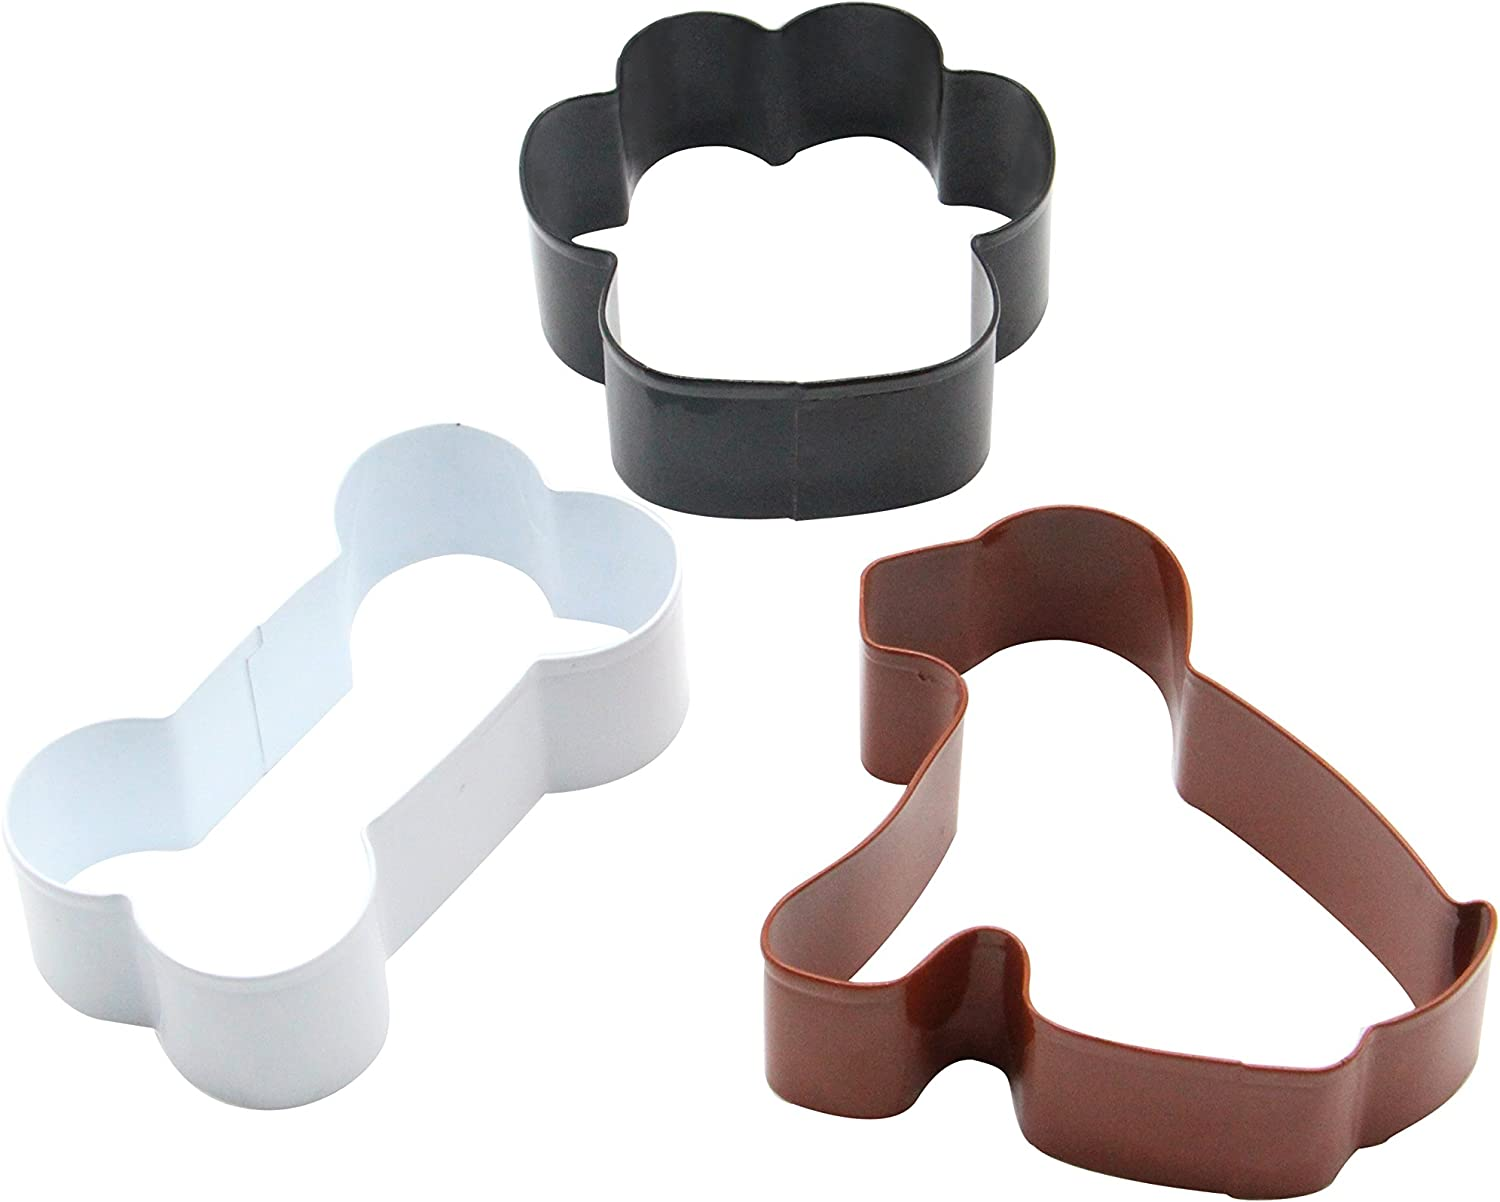 ShengHai Dog Cookie Cutter Set - 3 Piece - Dog, Paw Print and Dog Bone Stainless Steel Cookie Cutters